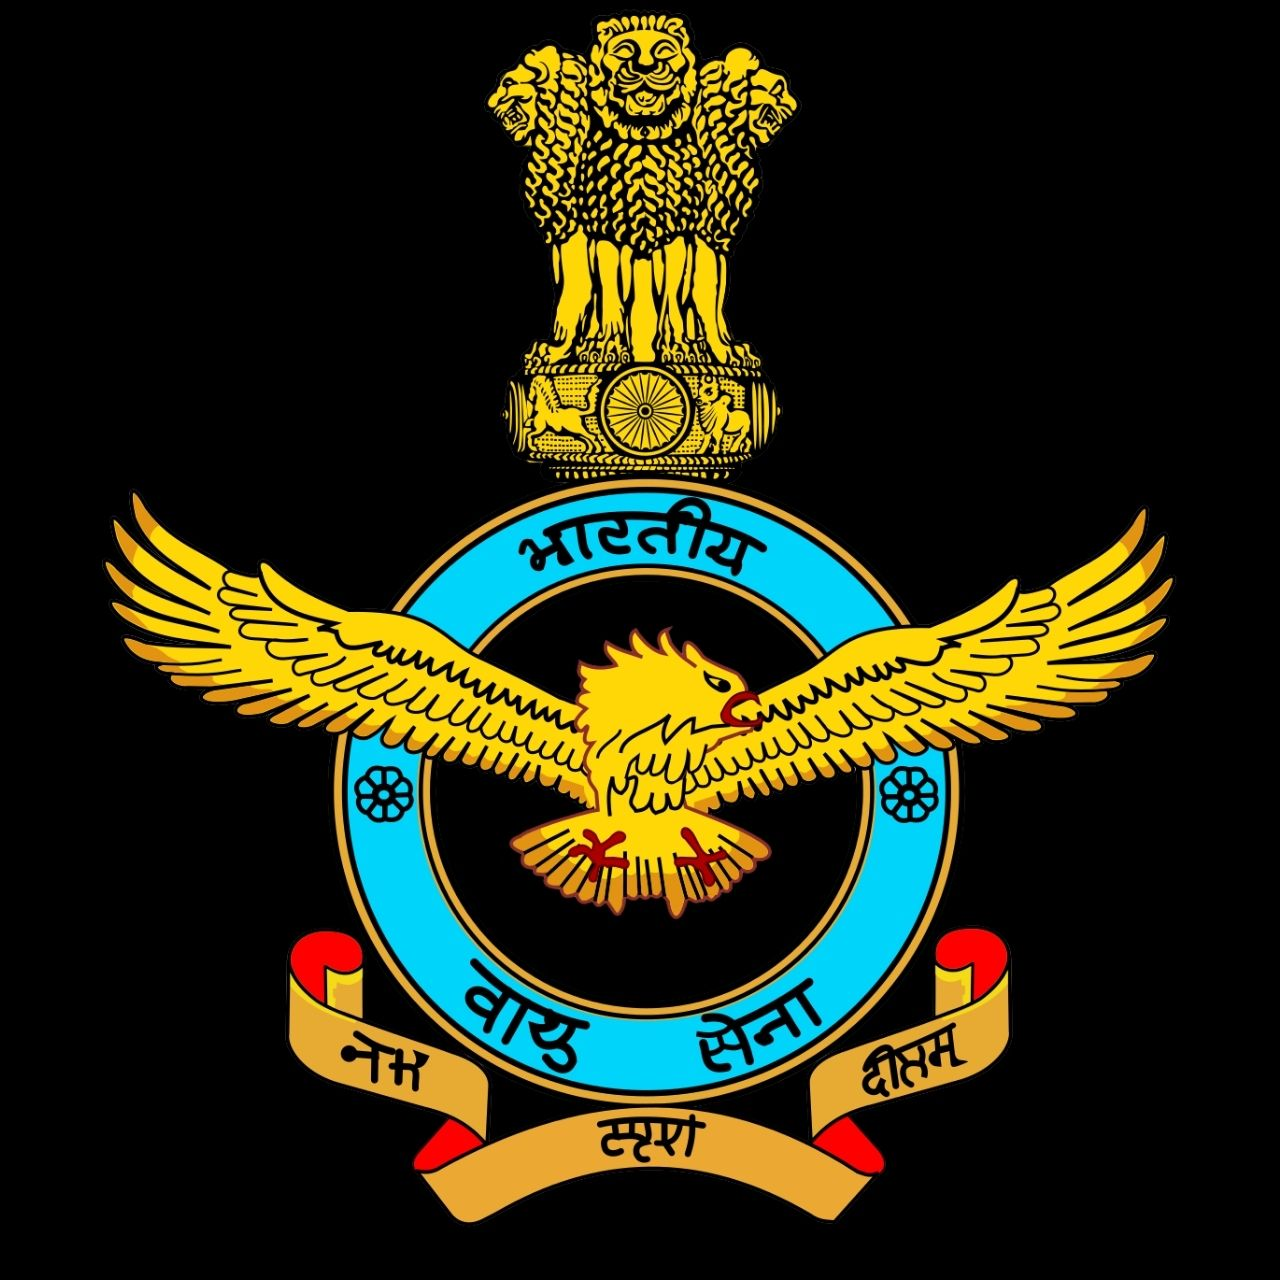 These 5 Bravehearts of the Indian Air Force will try hard to bring medals to Tokyo Olympics 2020